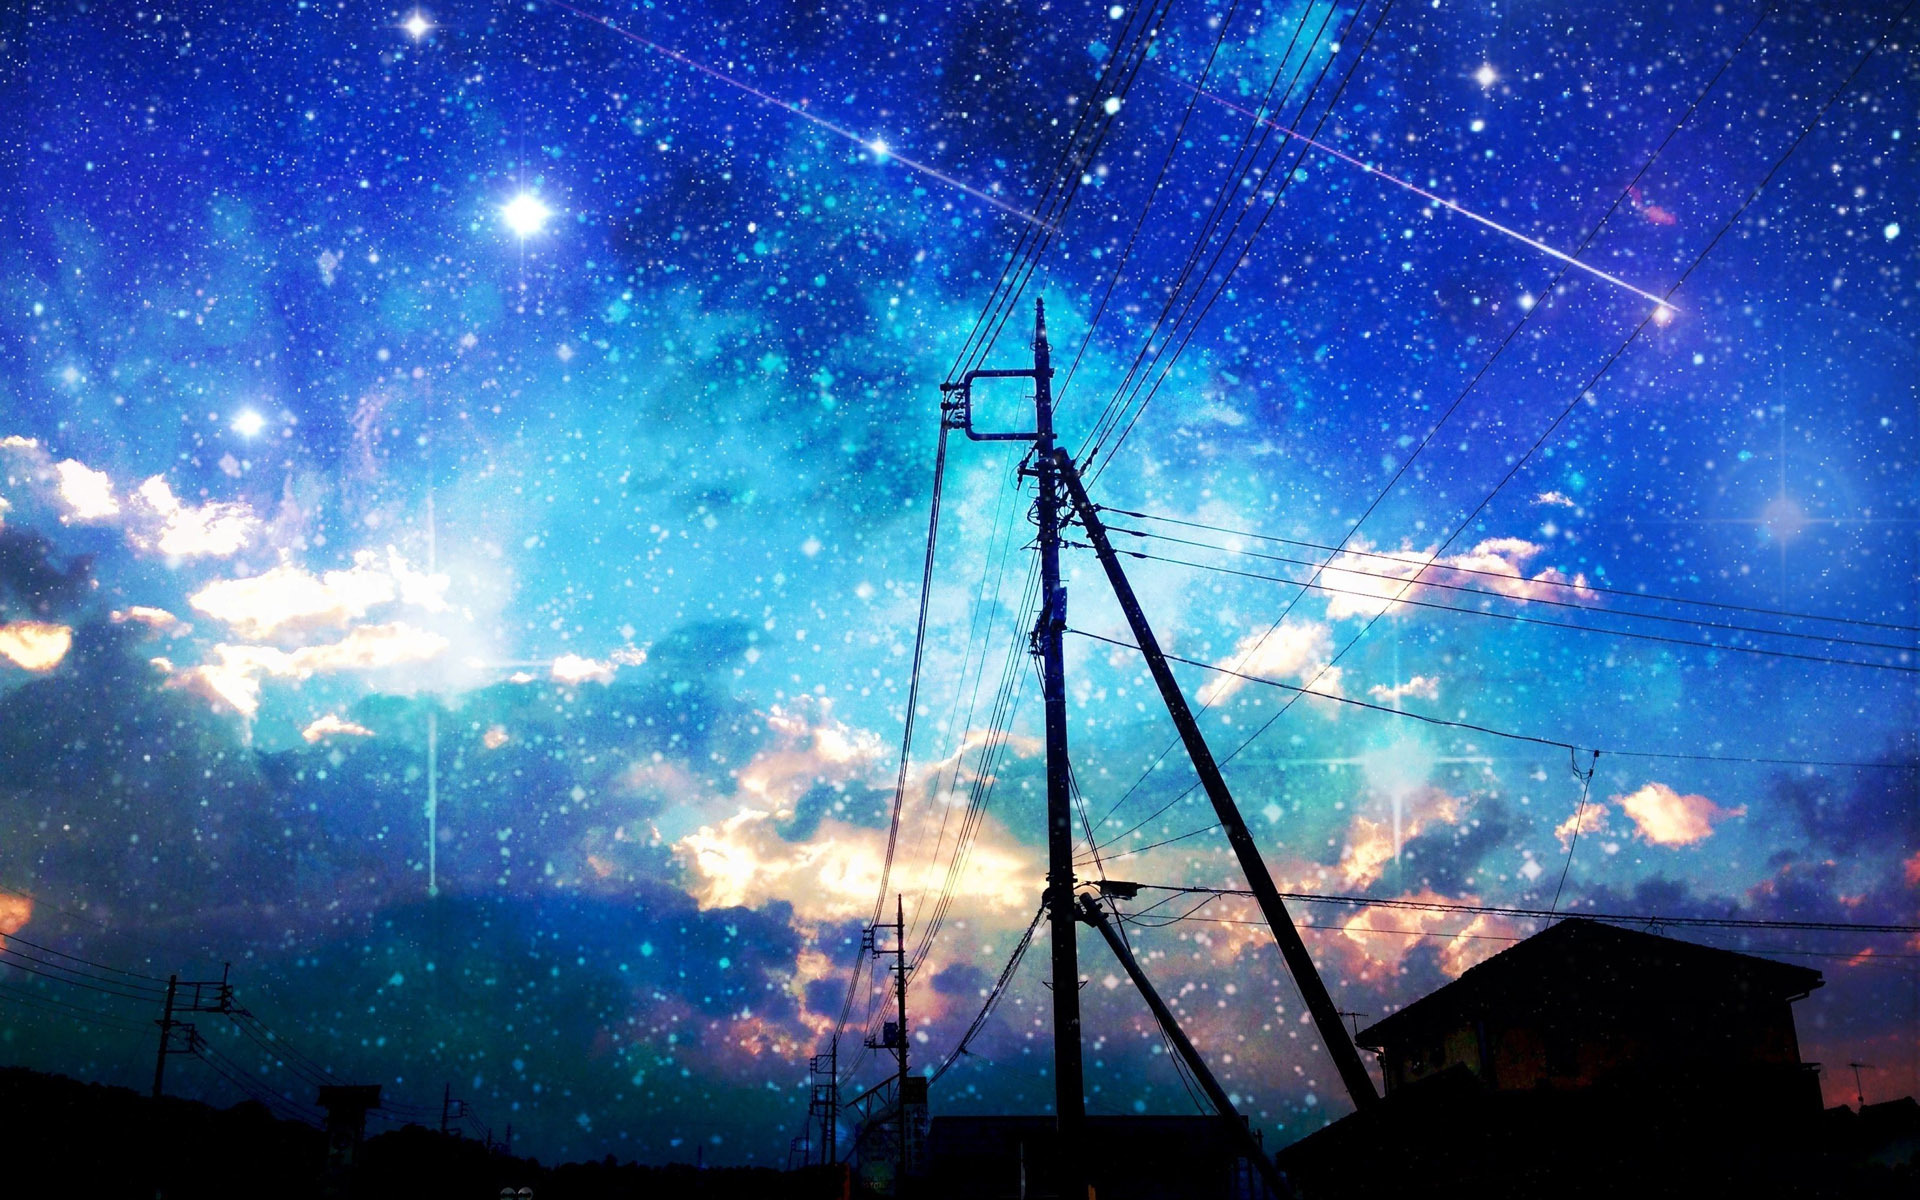 Starry sky over the city wallpaper